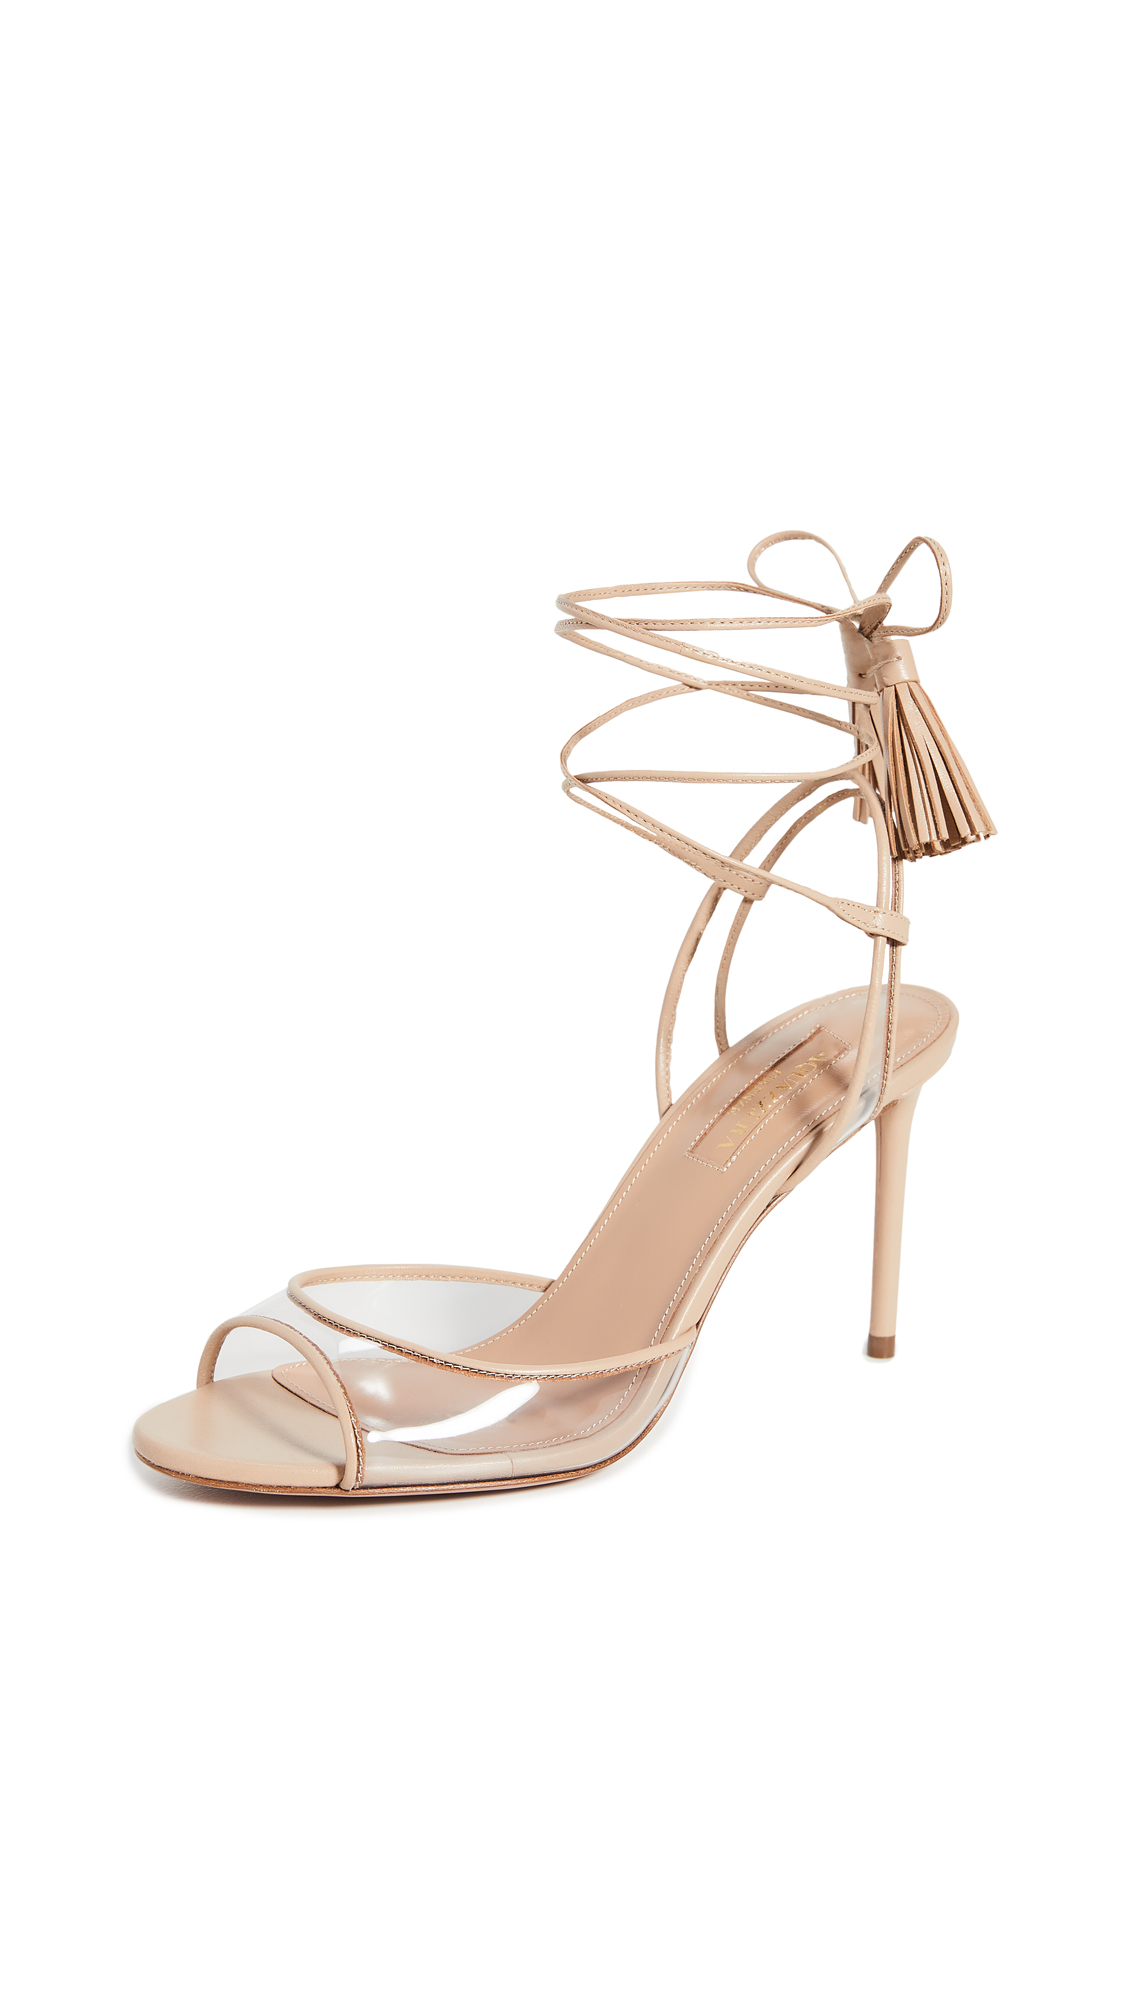 Buy Aquazzura Nudist 85mm Sandals online, shop Aquazzura